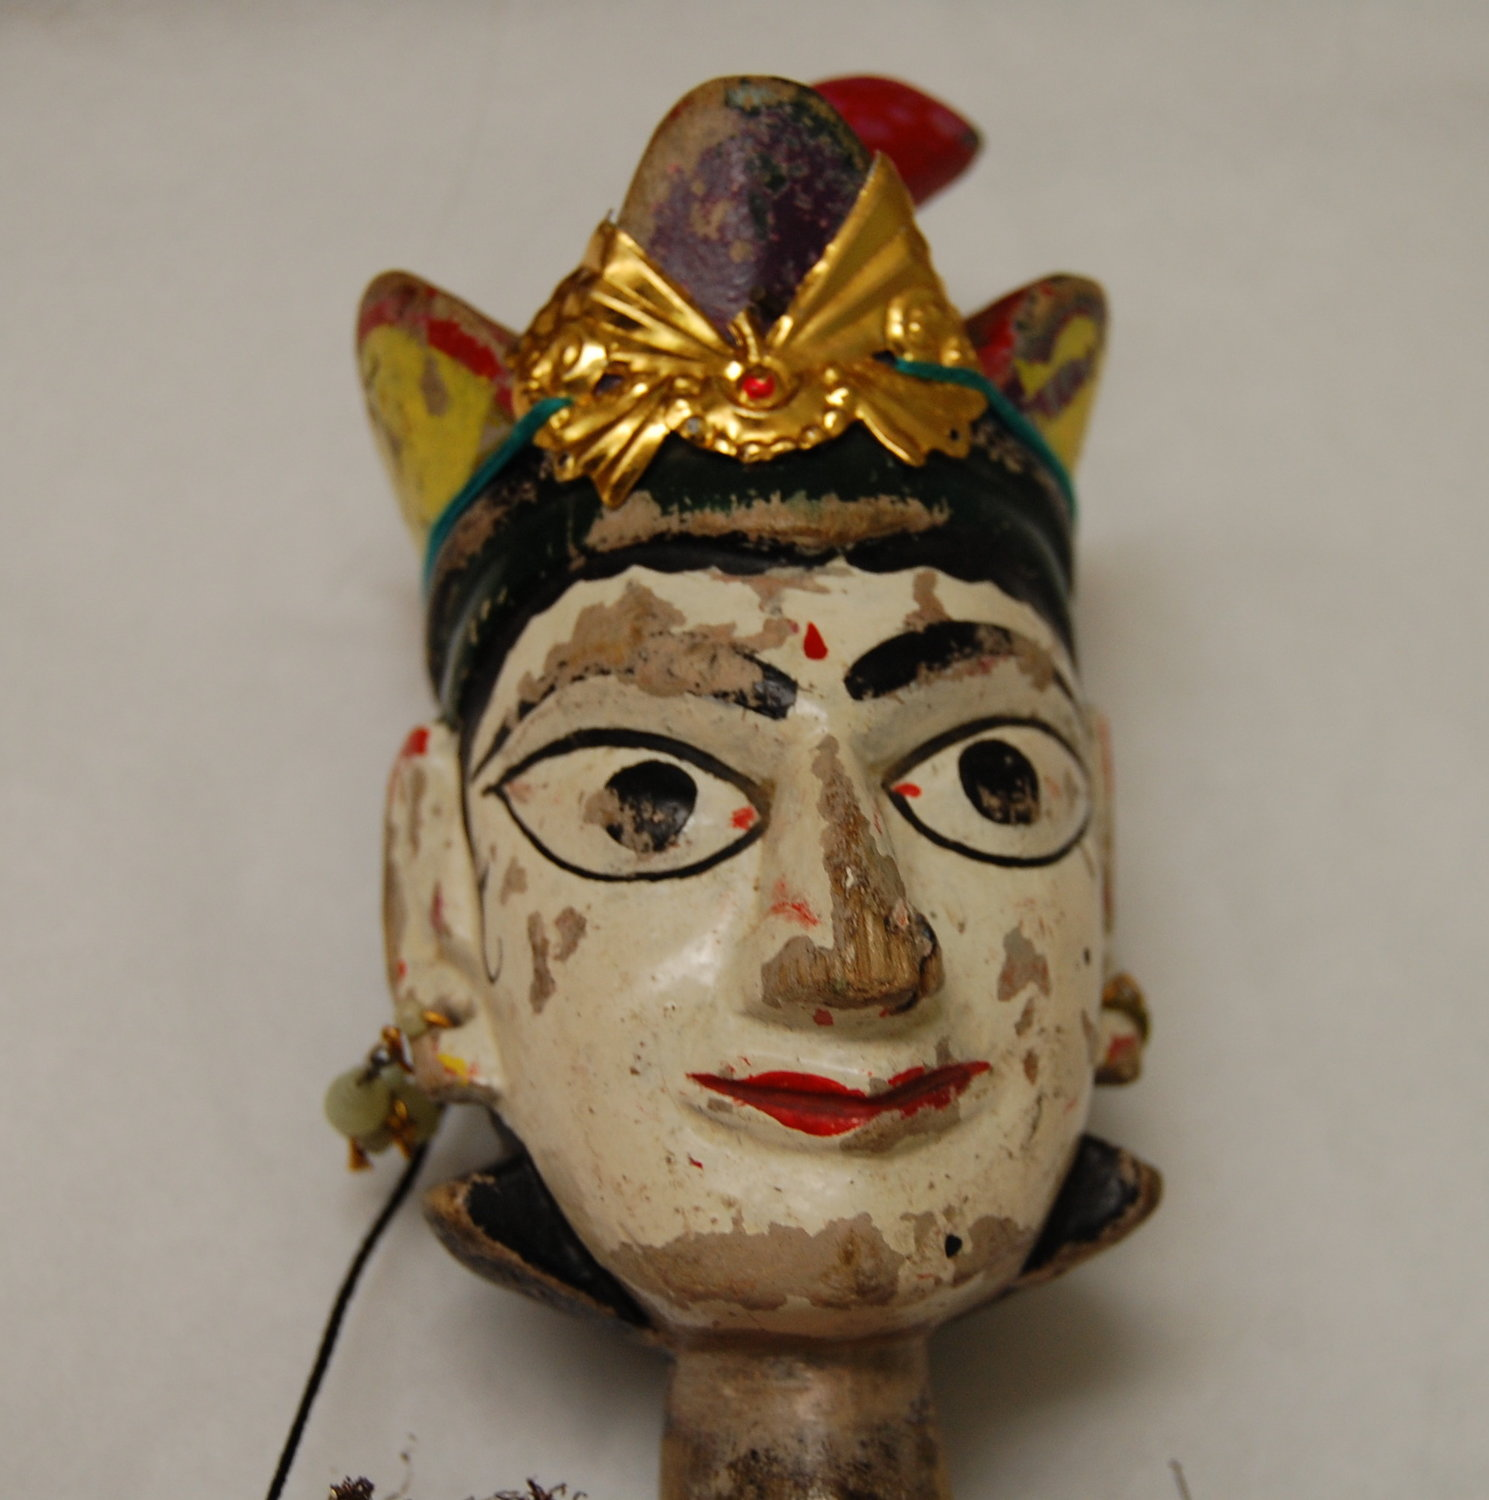 Un détail, Anarkali, la danseuse, une marionnette à fils, <em>kathputli</em>, du Rajasthan, en Inde, hauteur : 60 <em>c</em>m. Colle<em>c</em>tion : Center for Puppetry Arts (Atlanta, Géorgie, États-Unis). Photo réproduite avec l'aimable autorisation de Center for Puppetry Arts